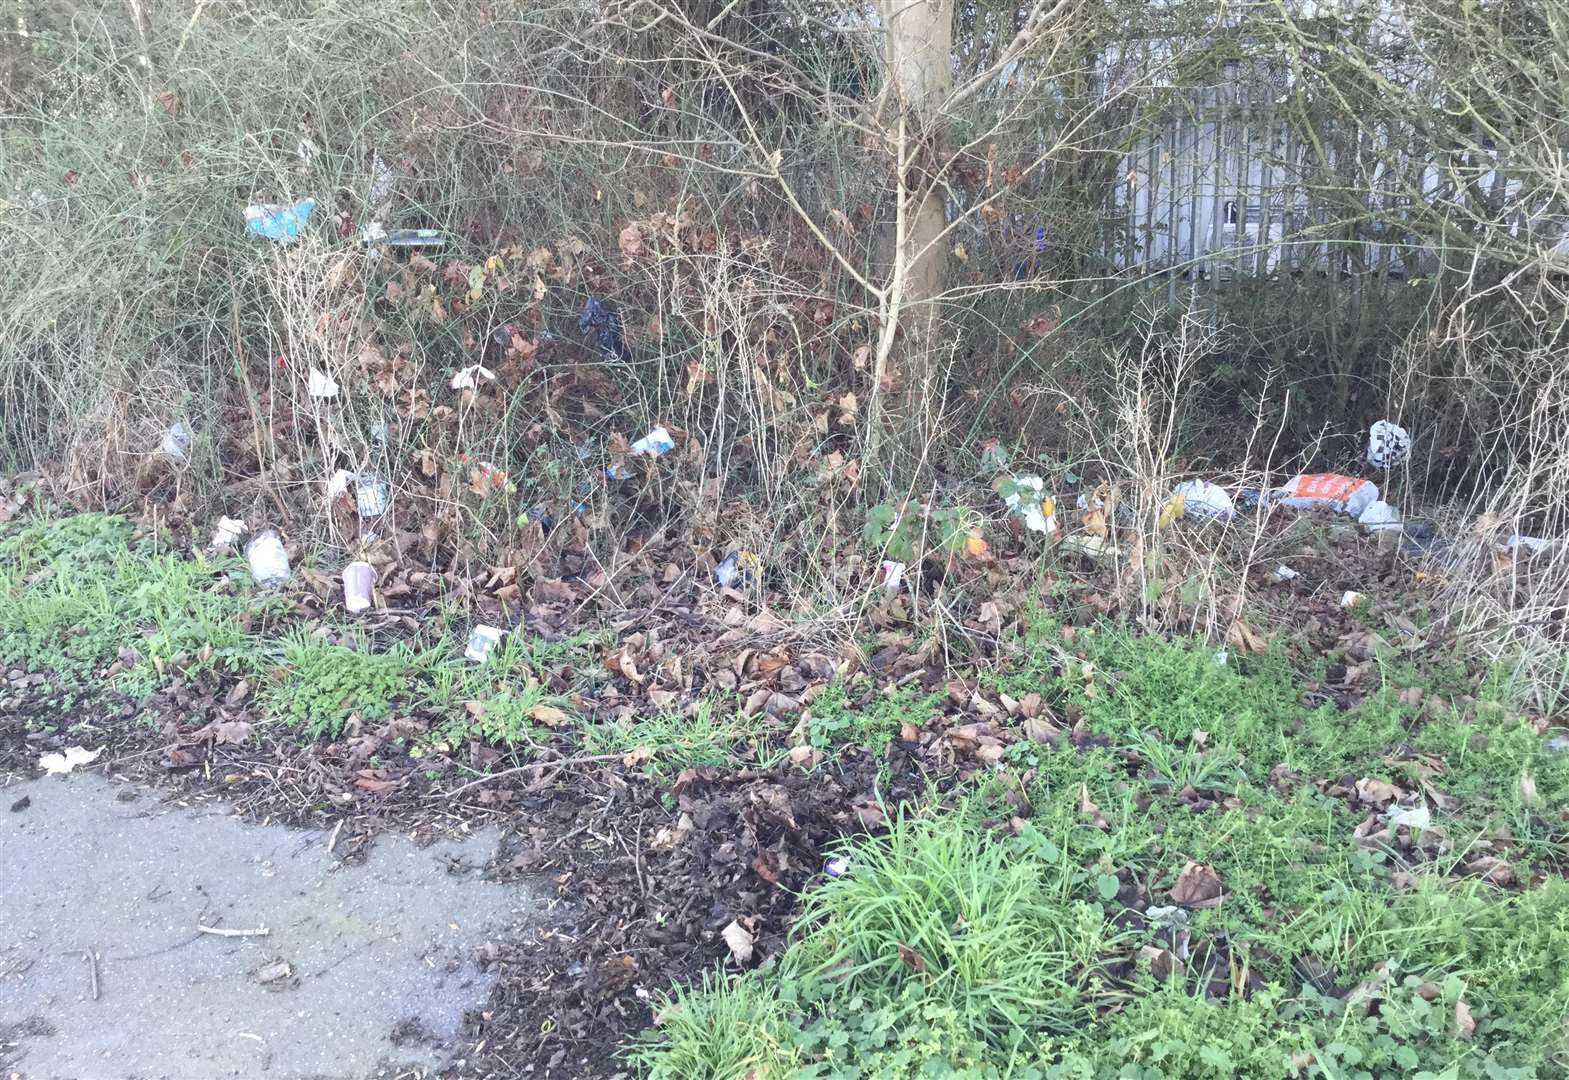 Anger as 'rubbish and human waste' left in Long Bennington